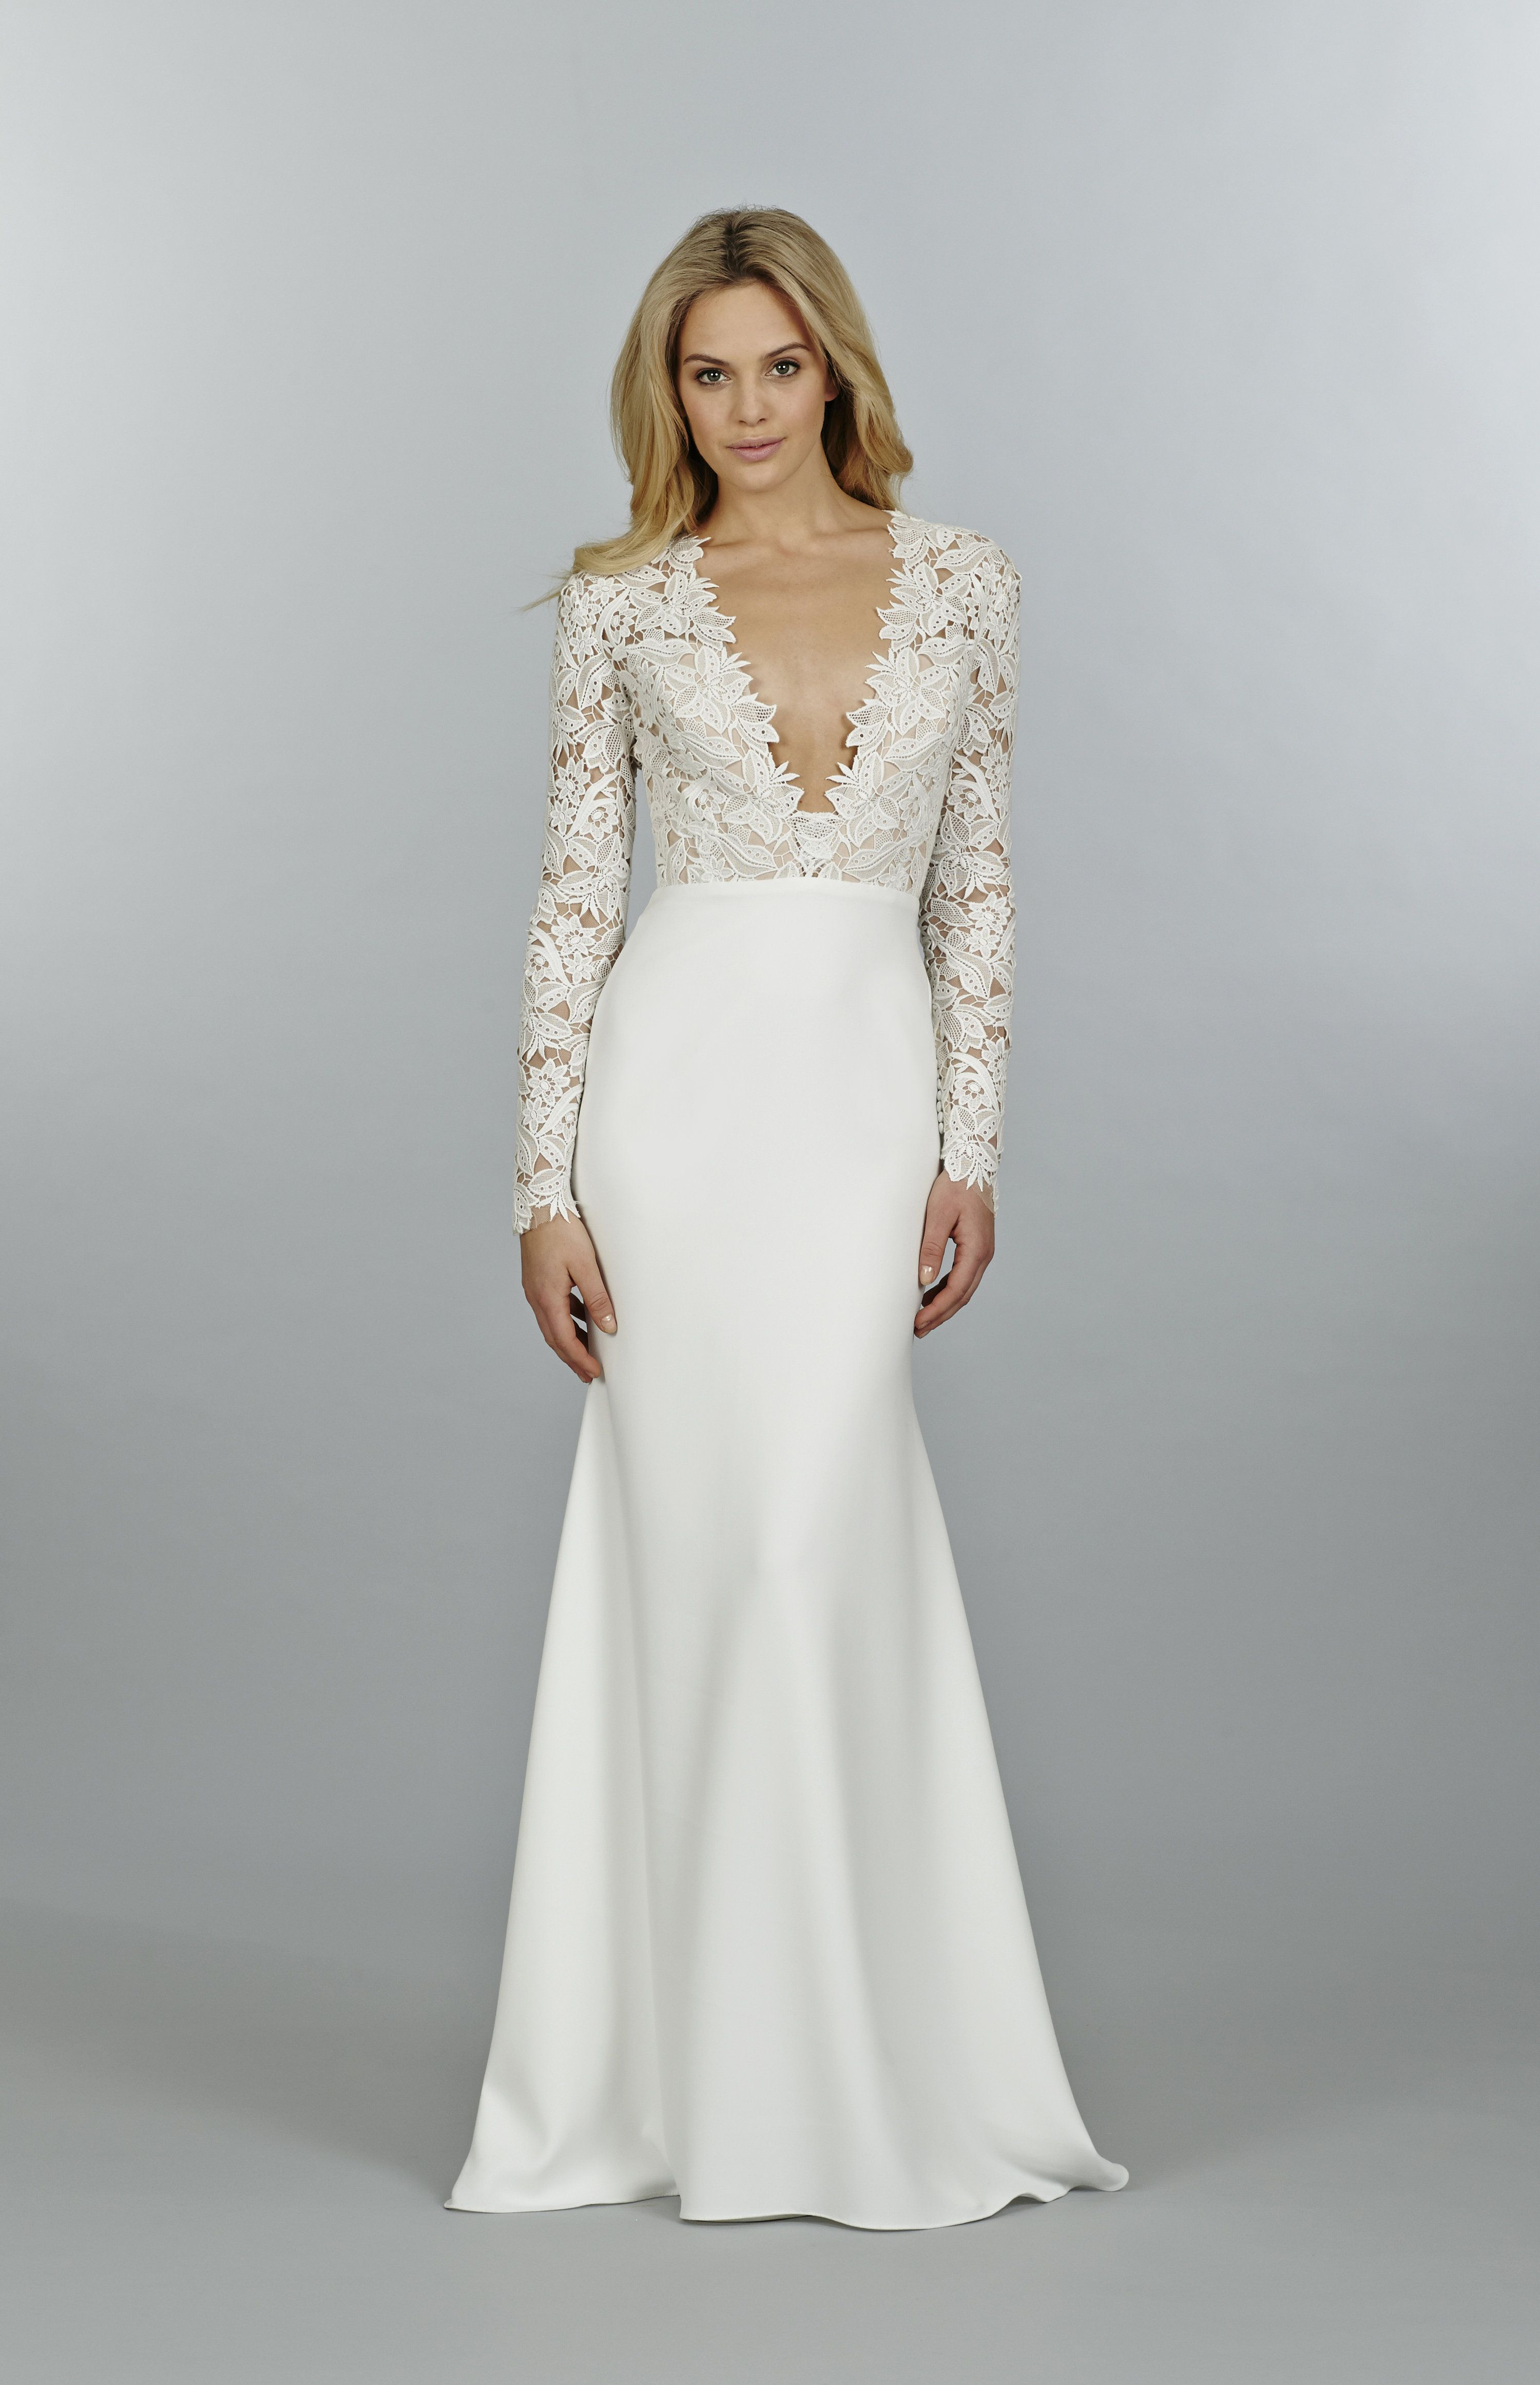 Designer: Tara Keely Style: 2450 Available at Bliss Bridal in WI blissbridalonline.com